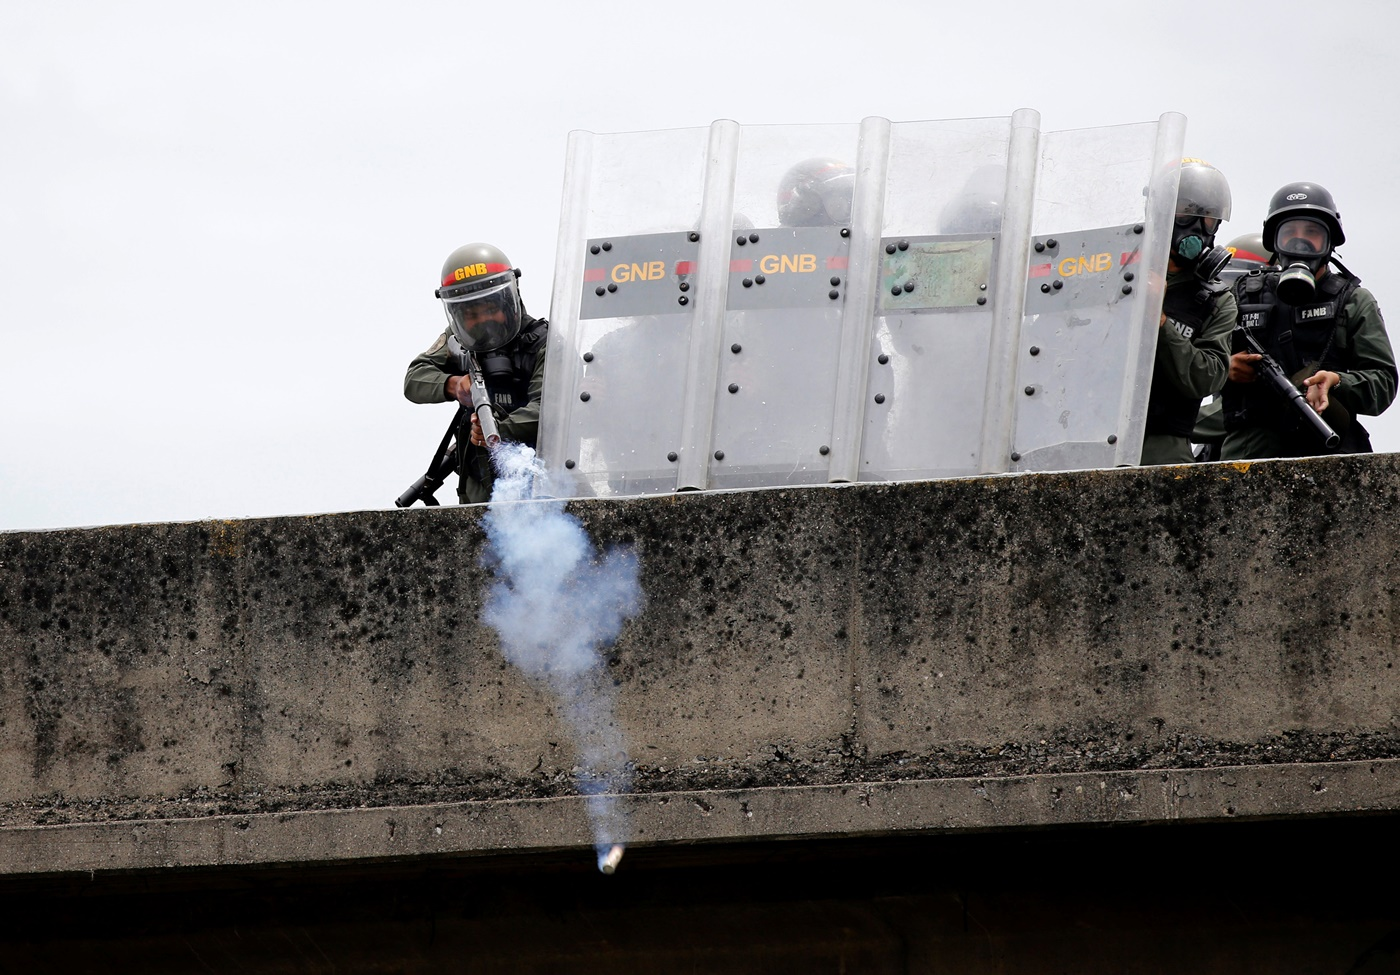 Riot police take position while clashing with opposition supporters during a rally against President Nicolas Maduro in Caracas, Venezuela May 3, 2017. REUTERS/Carlos Garcia Rawlins